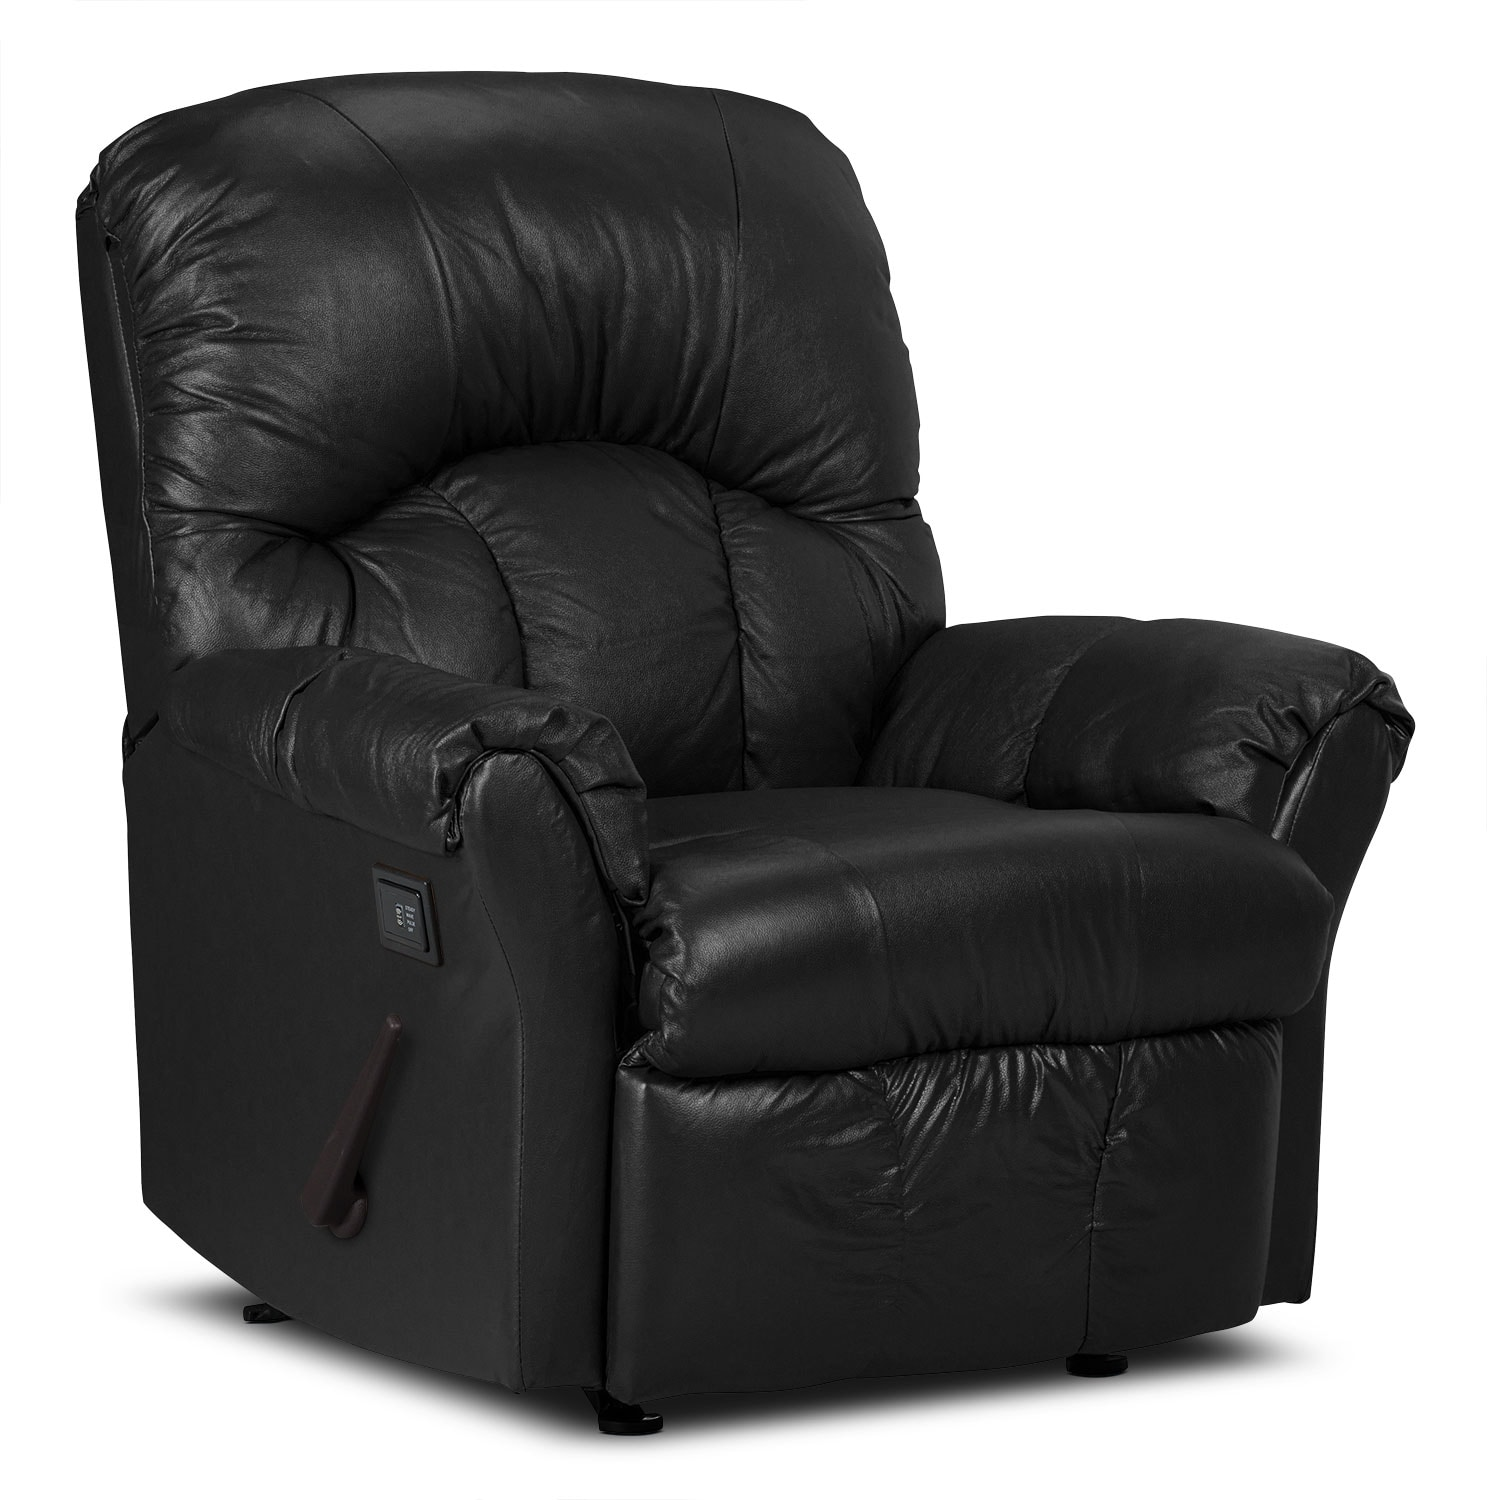 Living Room Furniture - Designed2B Recliner 6734 Genuine Leather Massage Chair - Black